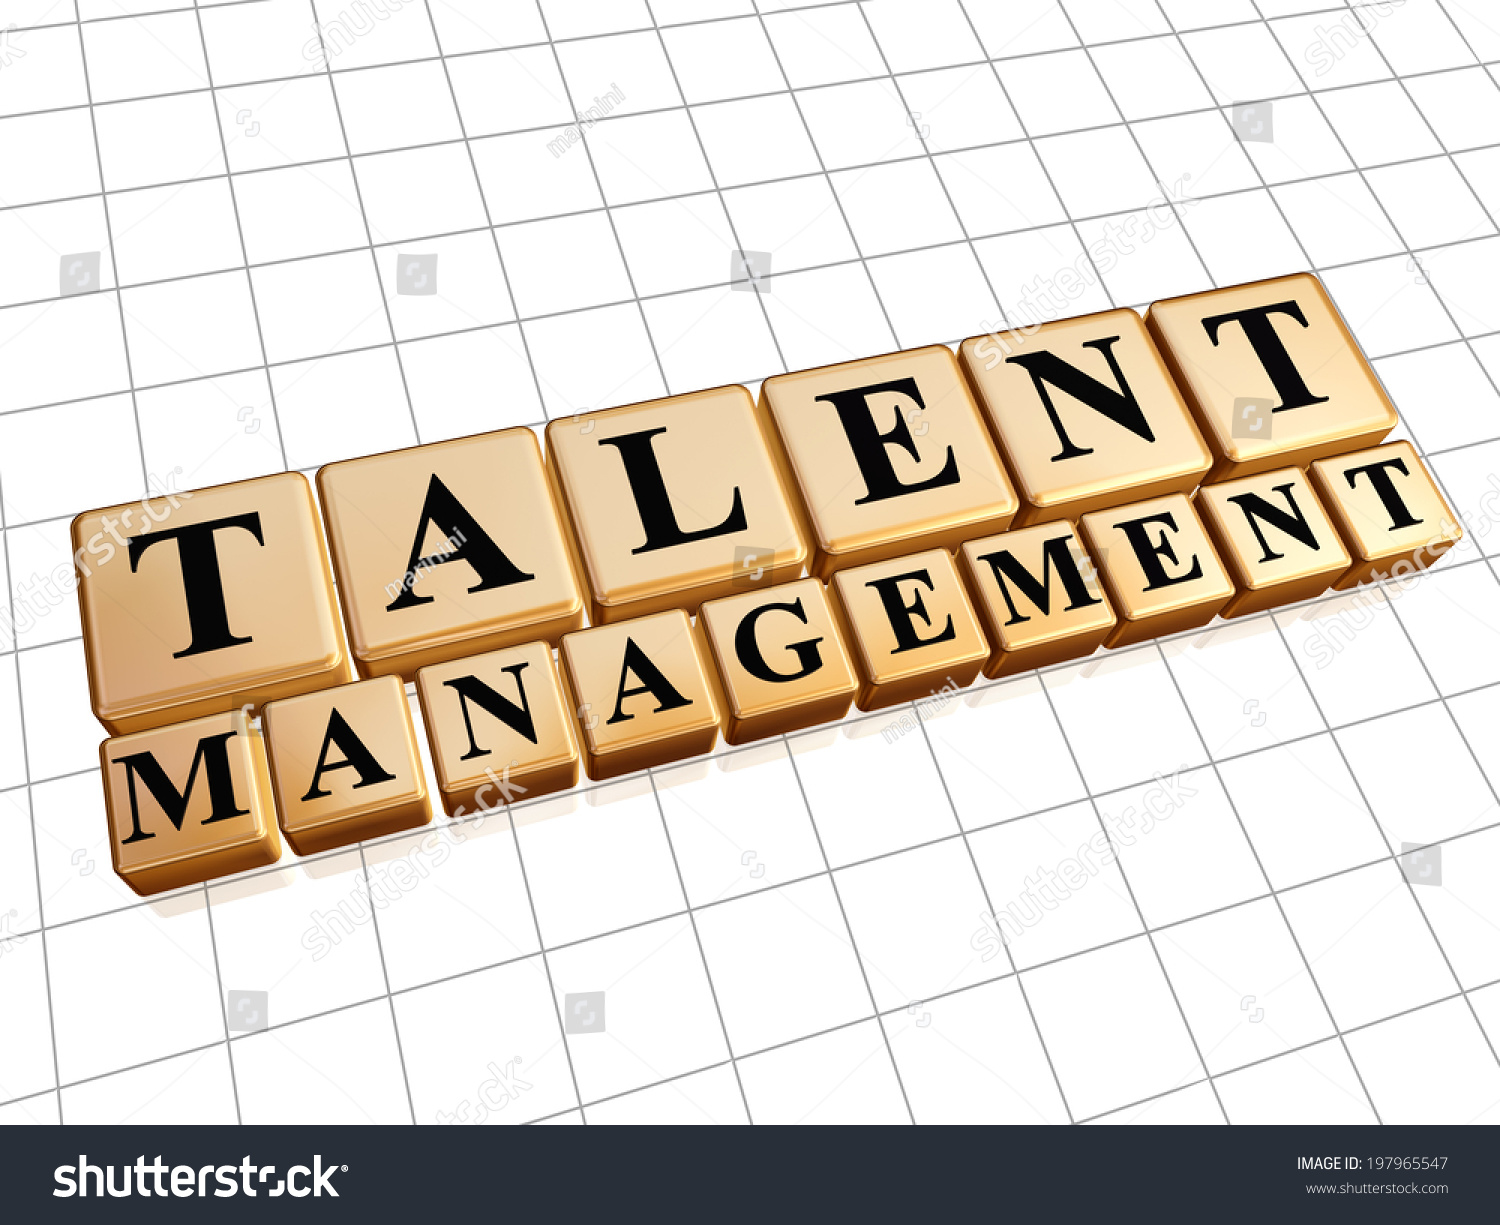 Talent Management Text In 3d Golden Cubes With Black Letters Ability Growing Concept Words